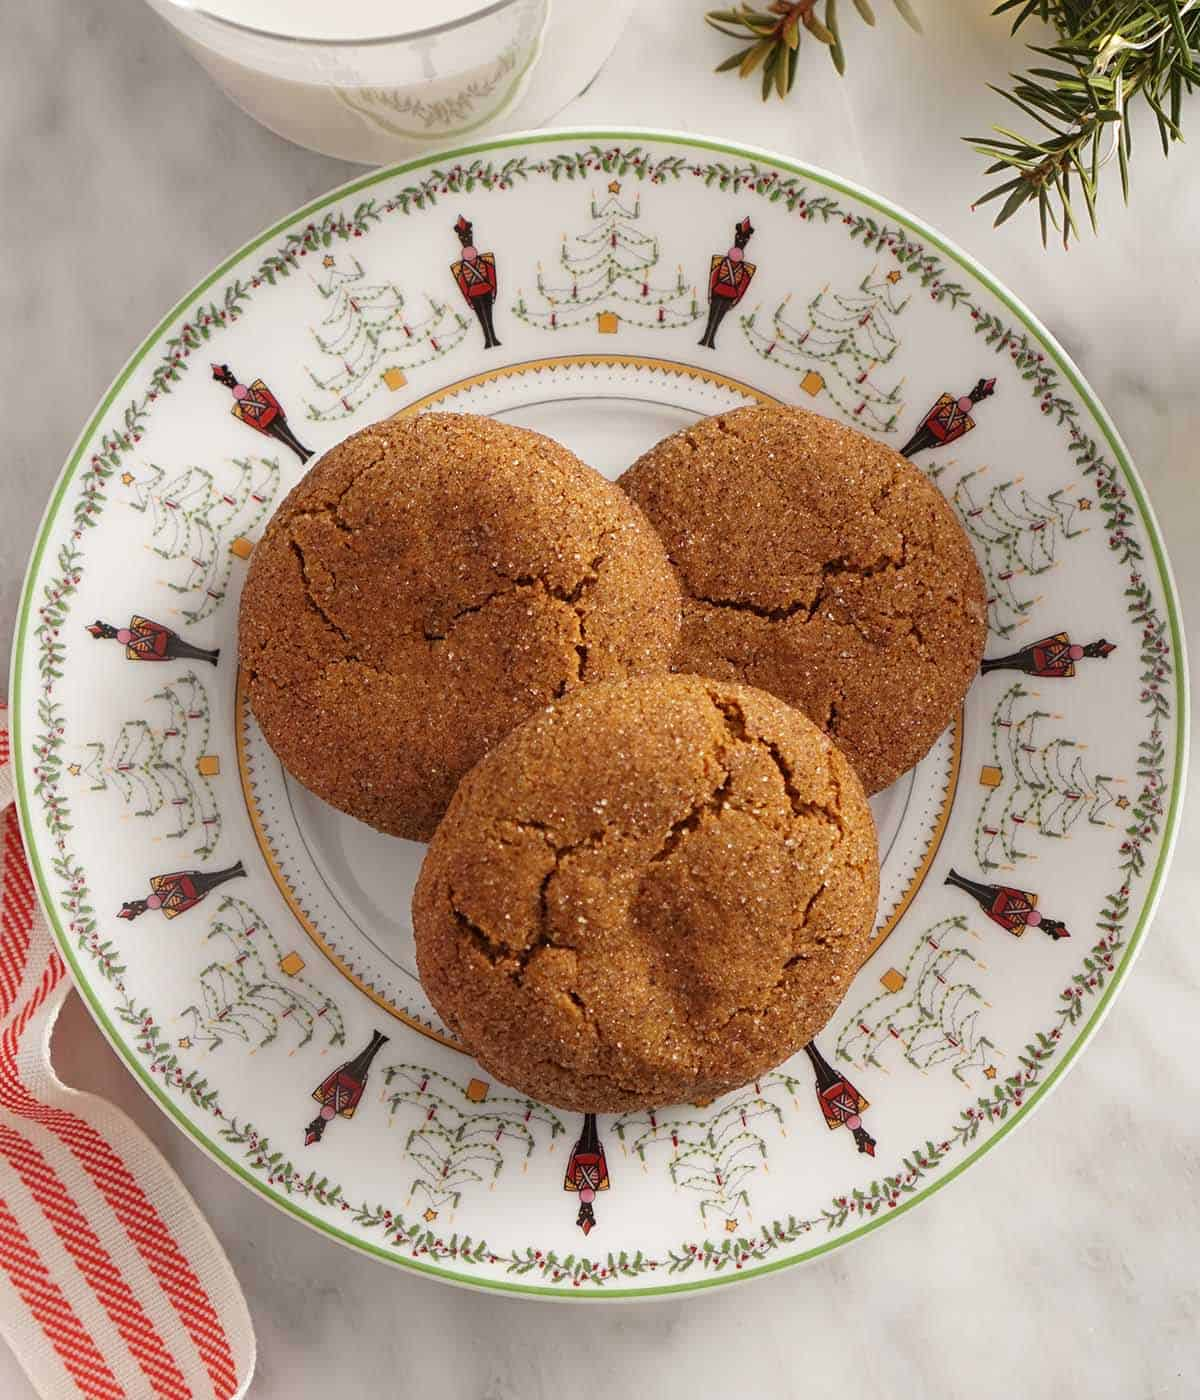 Gingersnap cookies on a holiday plate next to a glass of milk and a red ribbon.